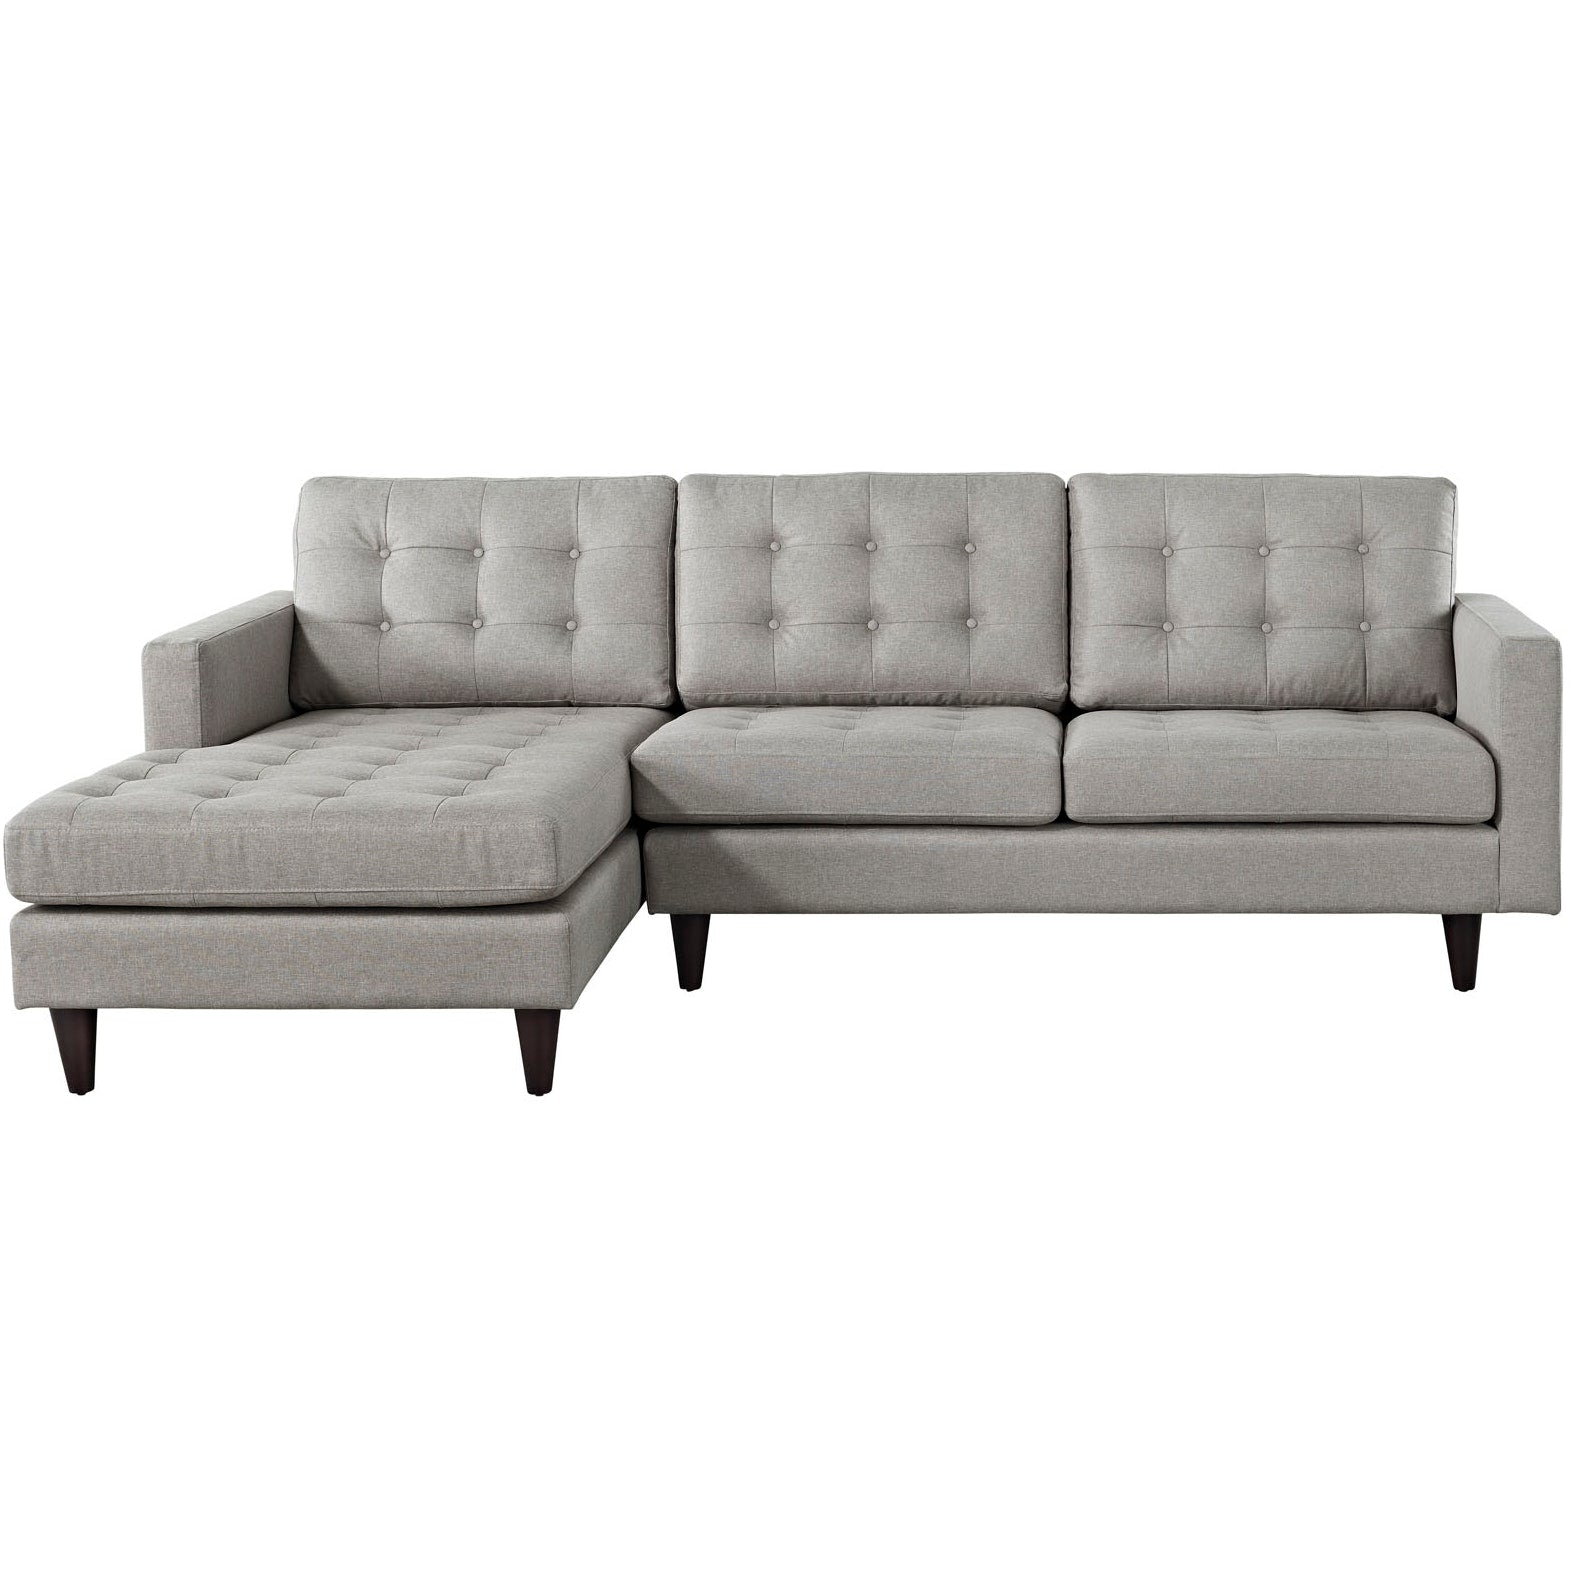 Empress Left-Facing Upholstered Fabric Sectional Sofa - Light Gray